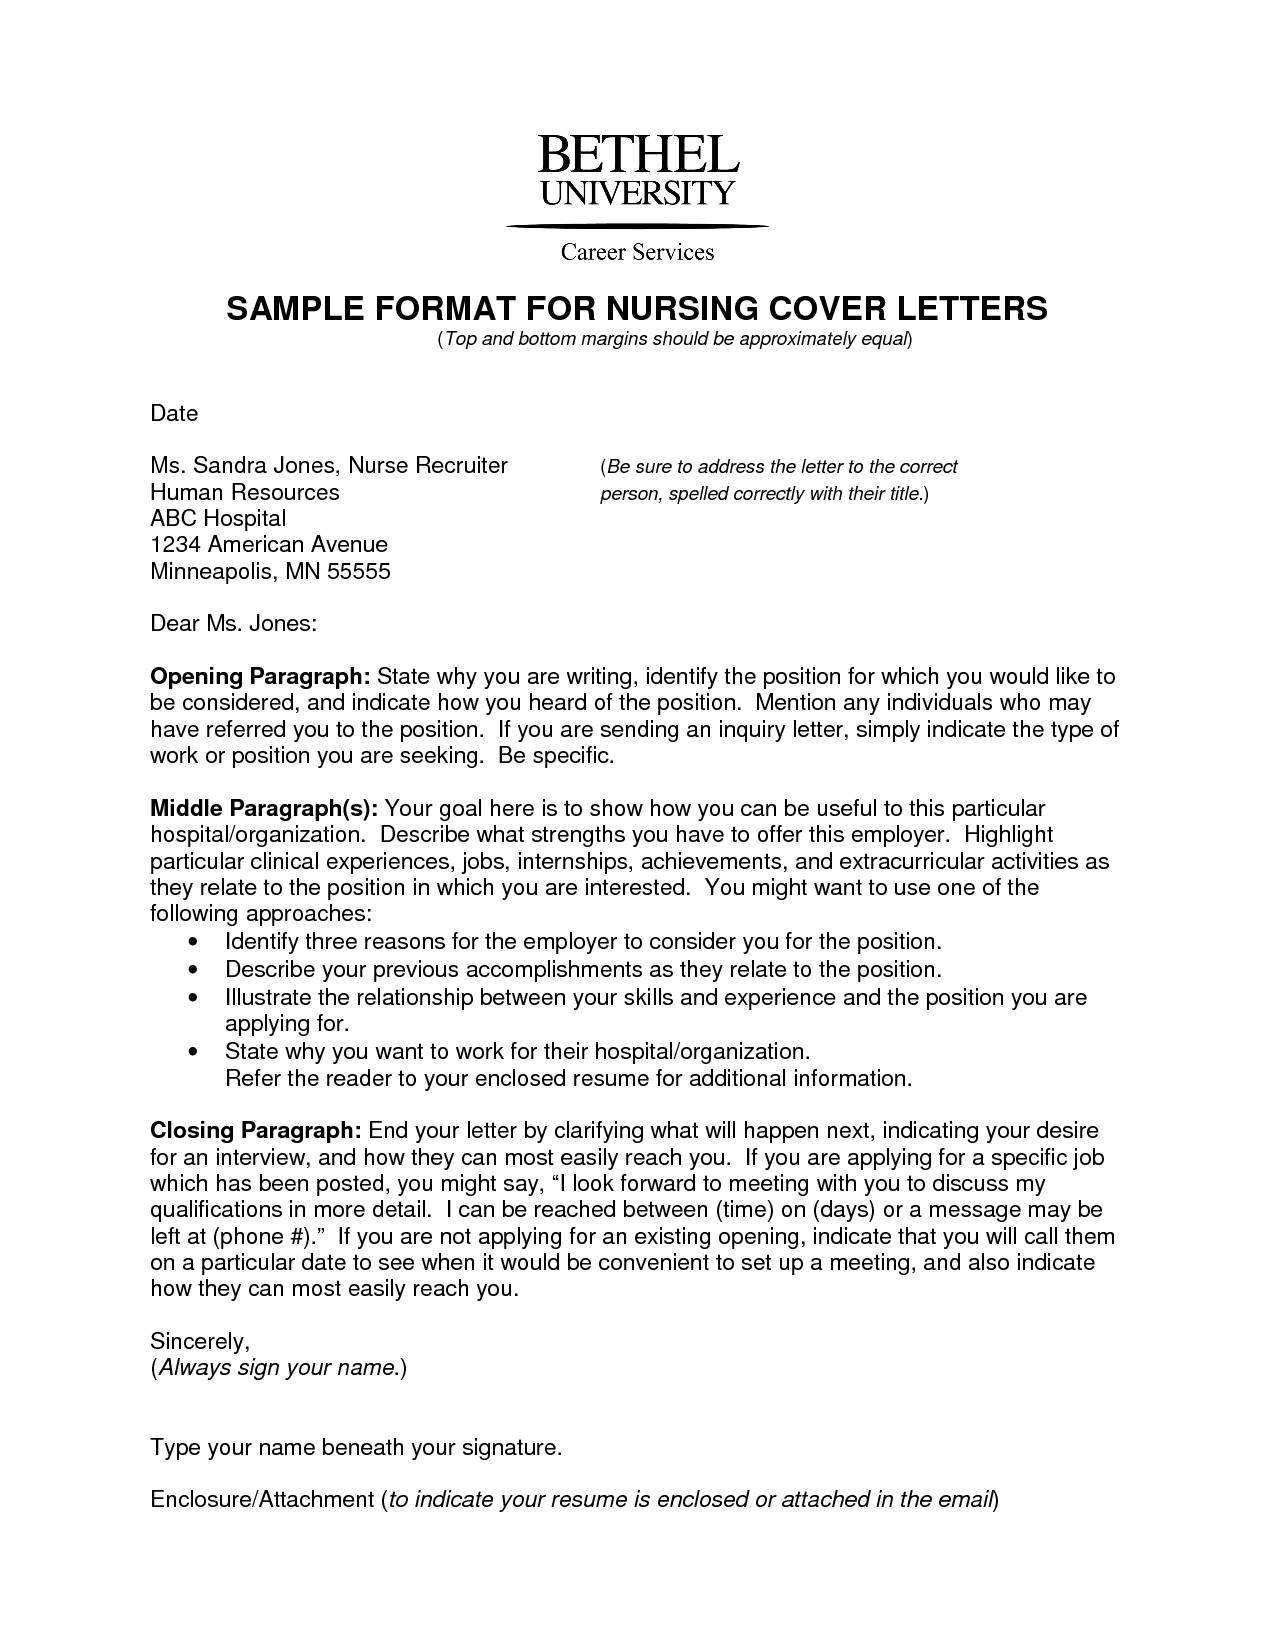 Nursing School Resume Pinizzy Marie On Nursing  Pinterest  Lpn Nursing Registered